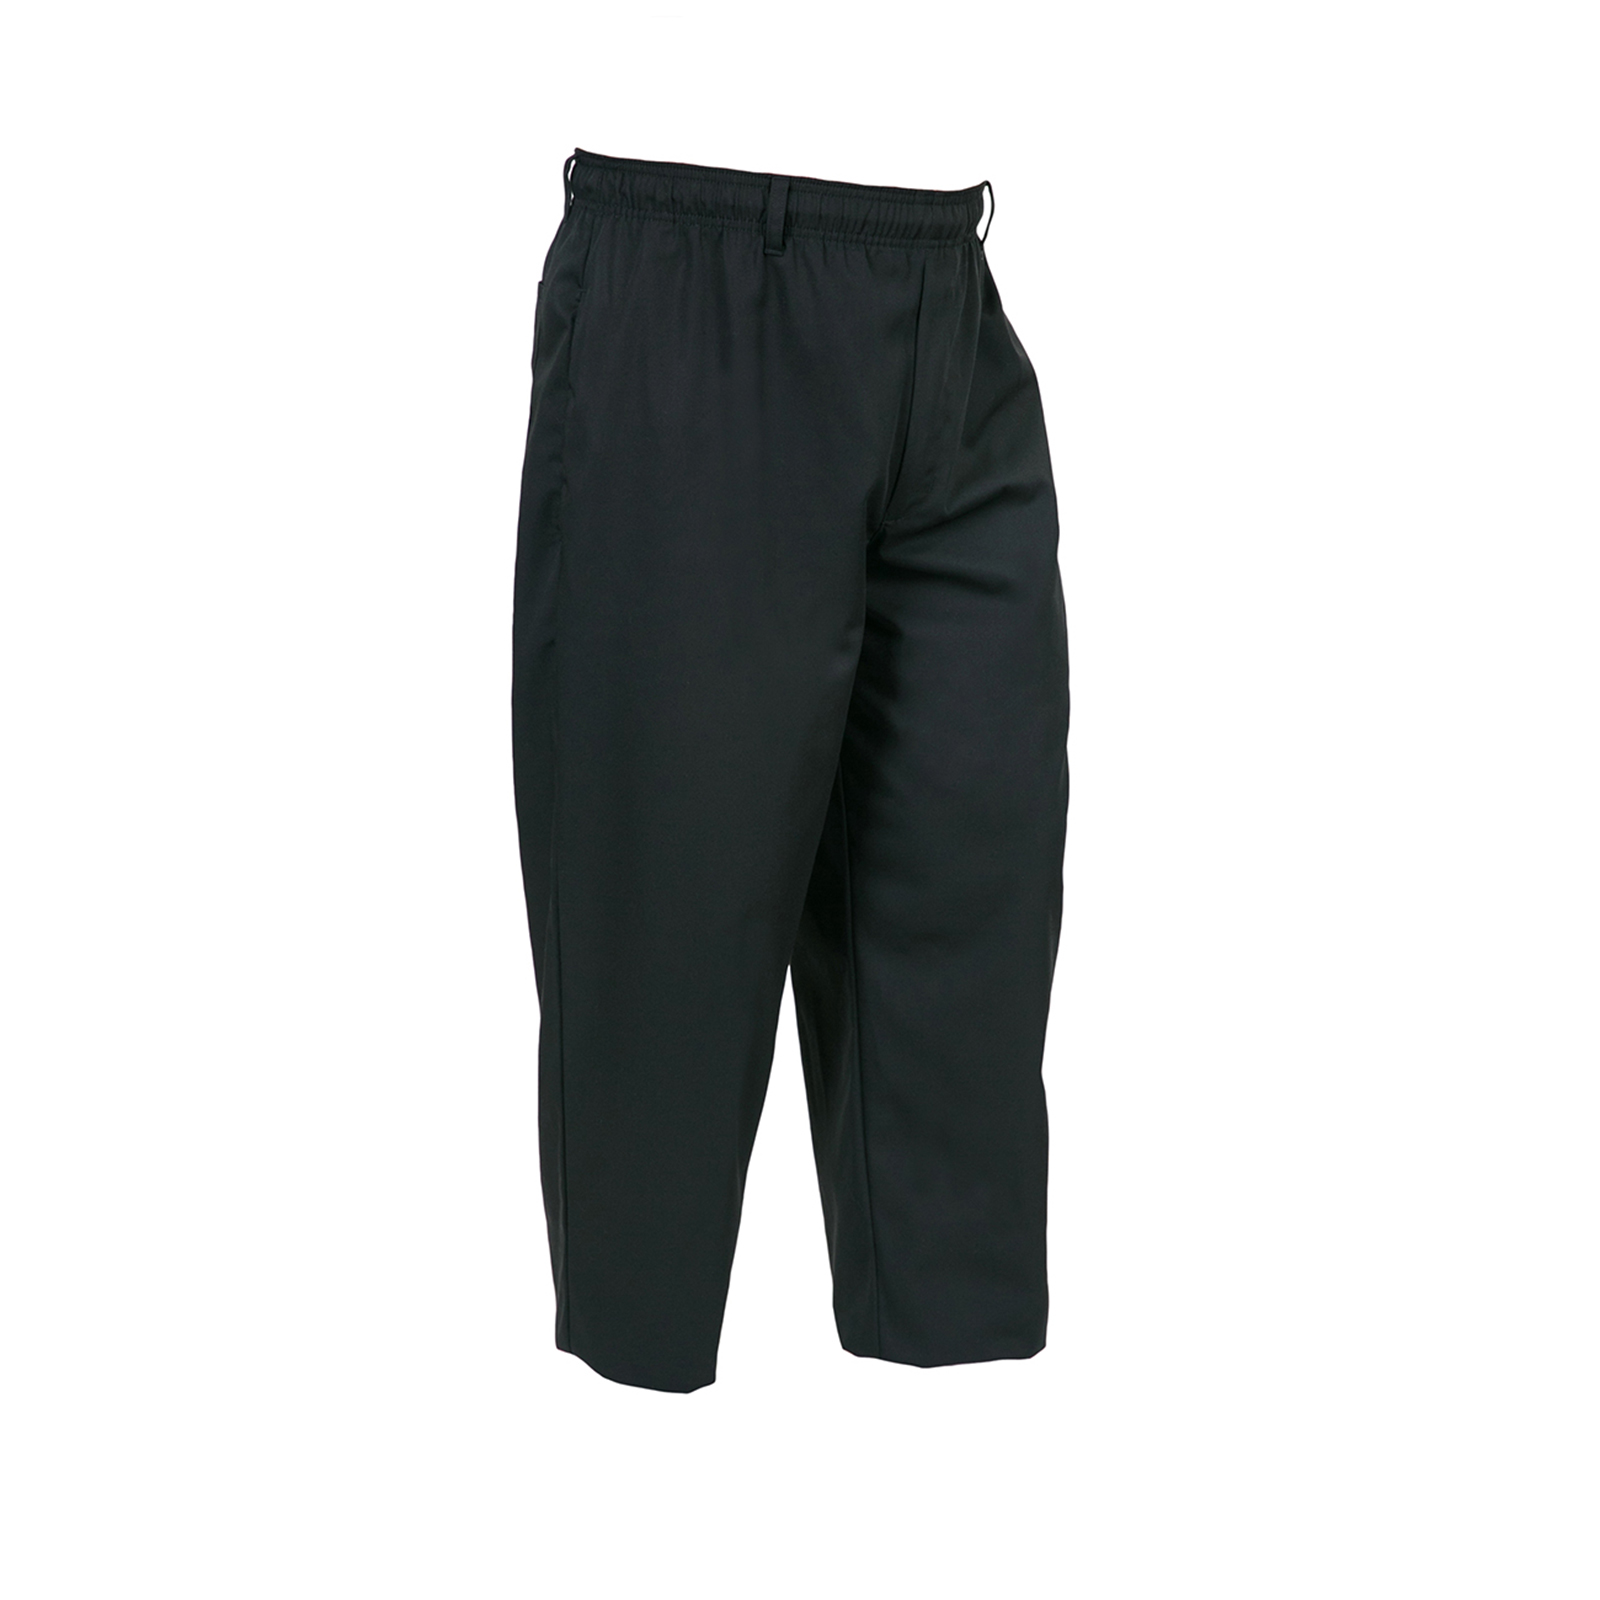 Mercer Culinary M60050BKS chef's pants